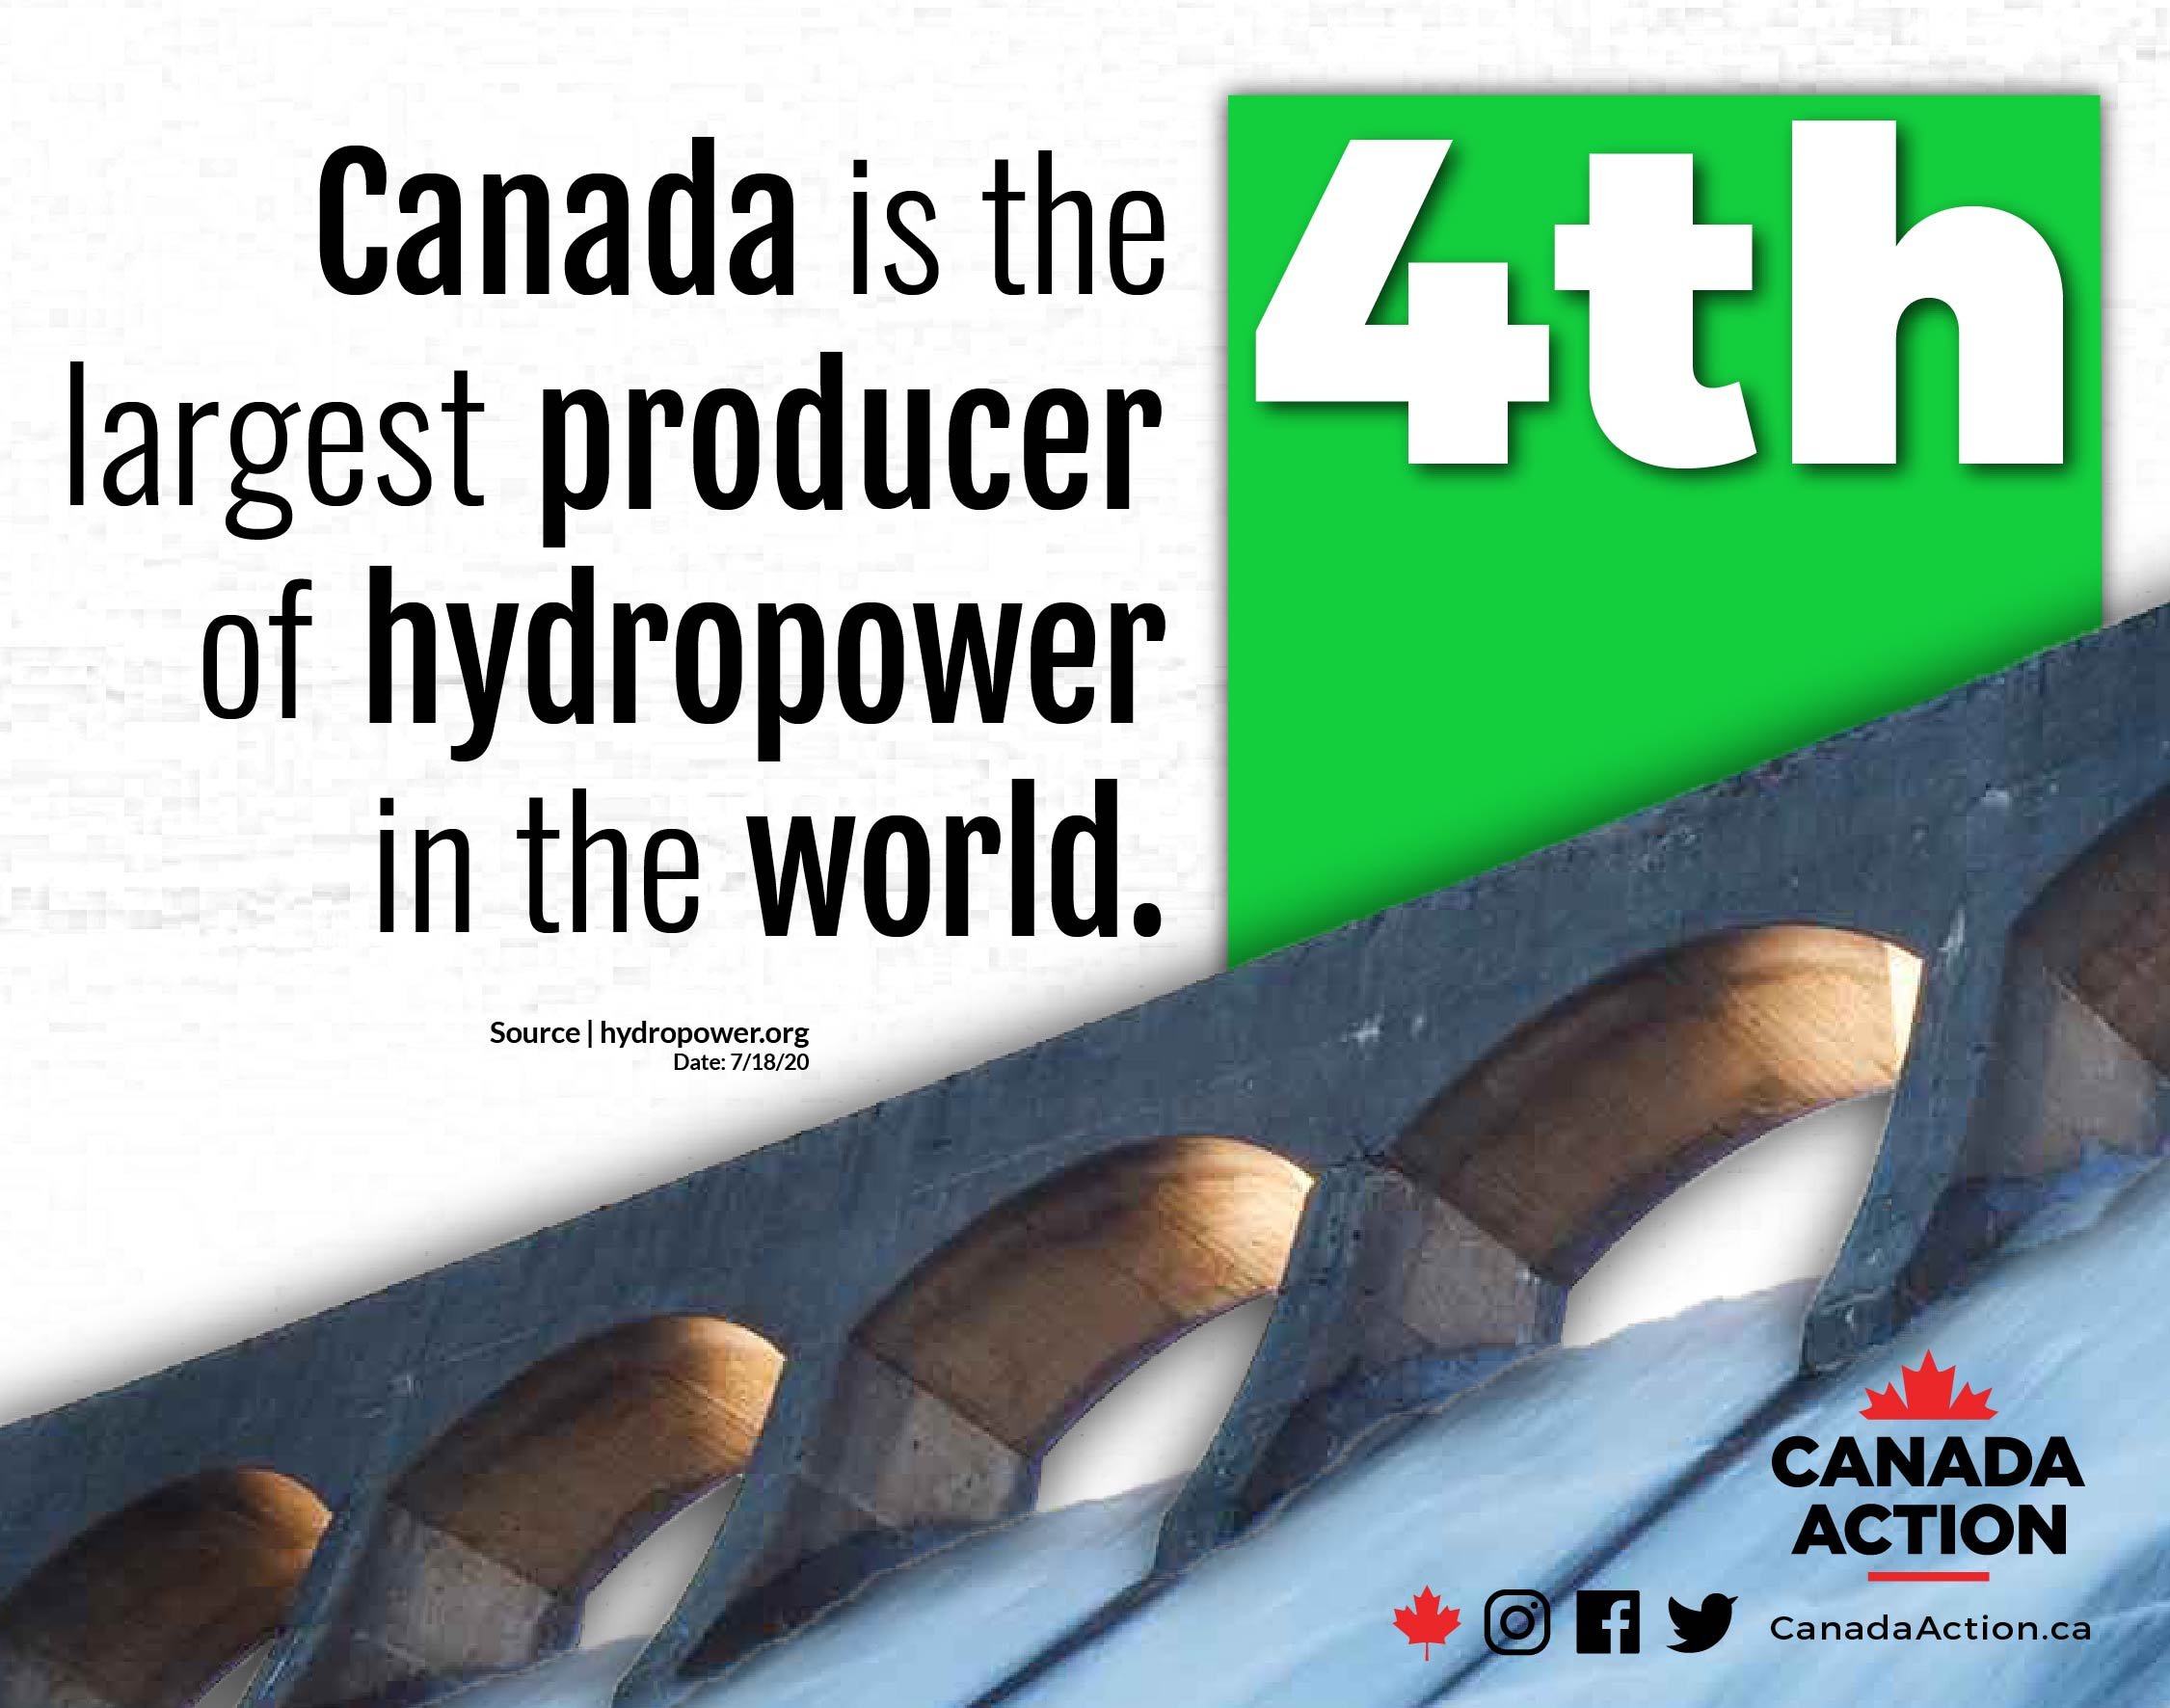 Canada is the 4th Largest Producer of Hydropower in the World